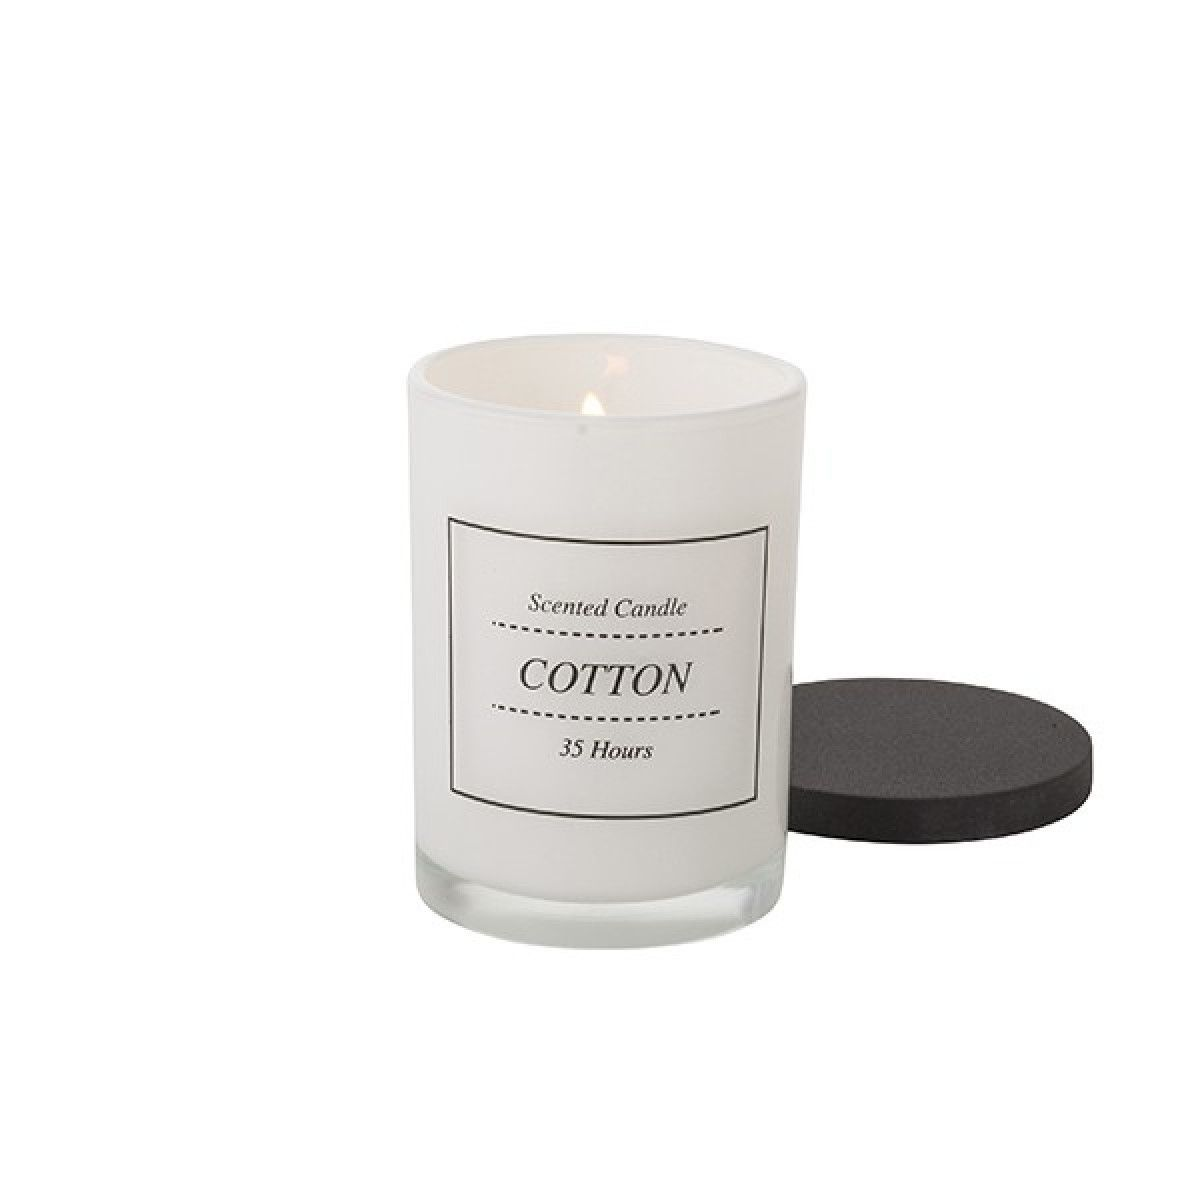 Bahne White Cotton Scented Candle